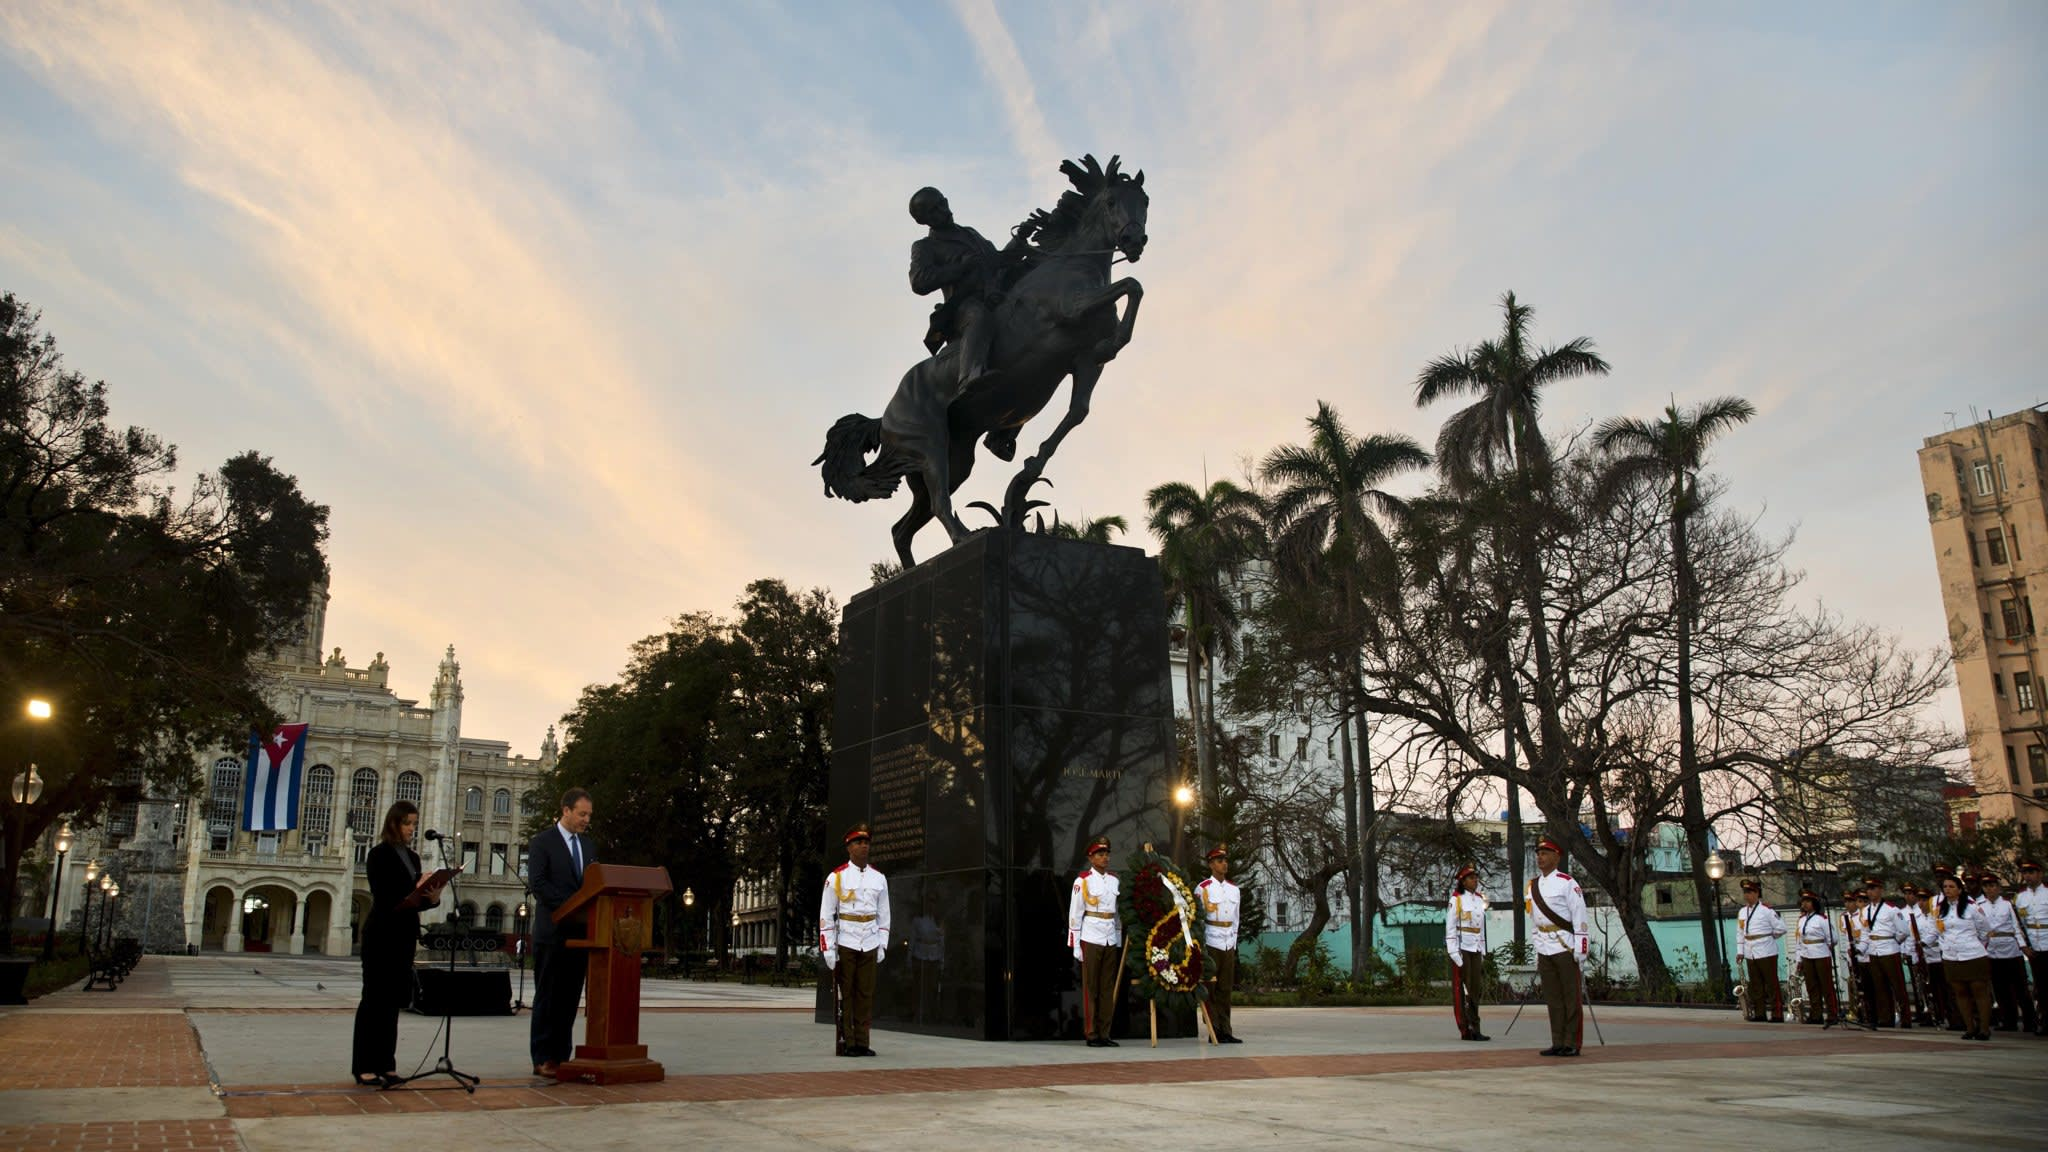 Cuba after the Castros: escaping a long shadow